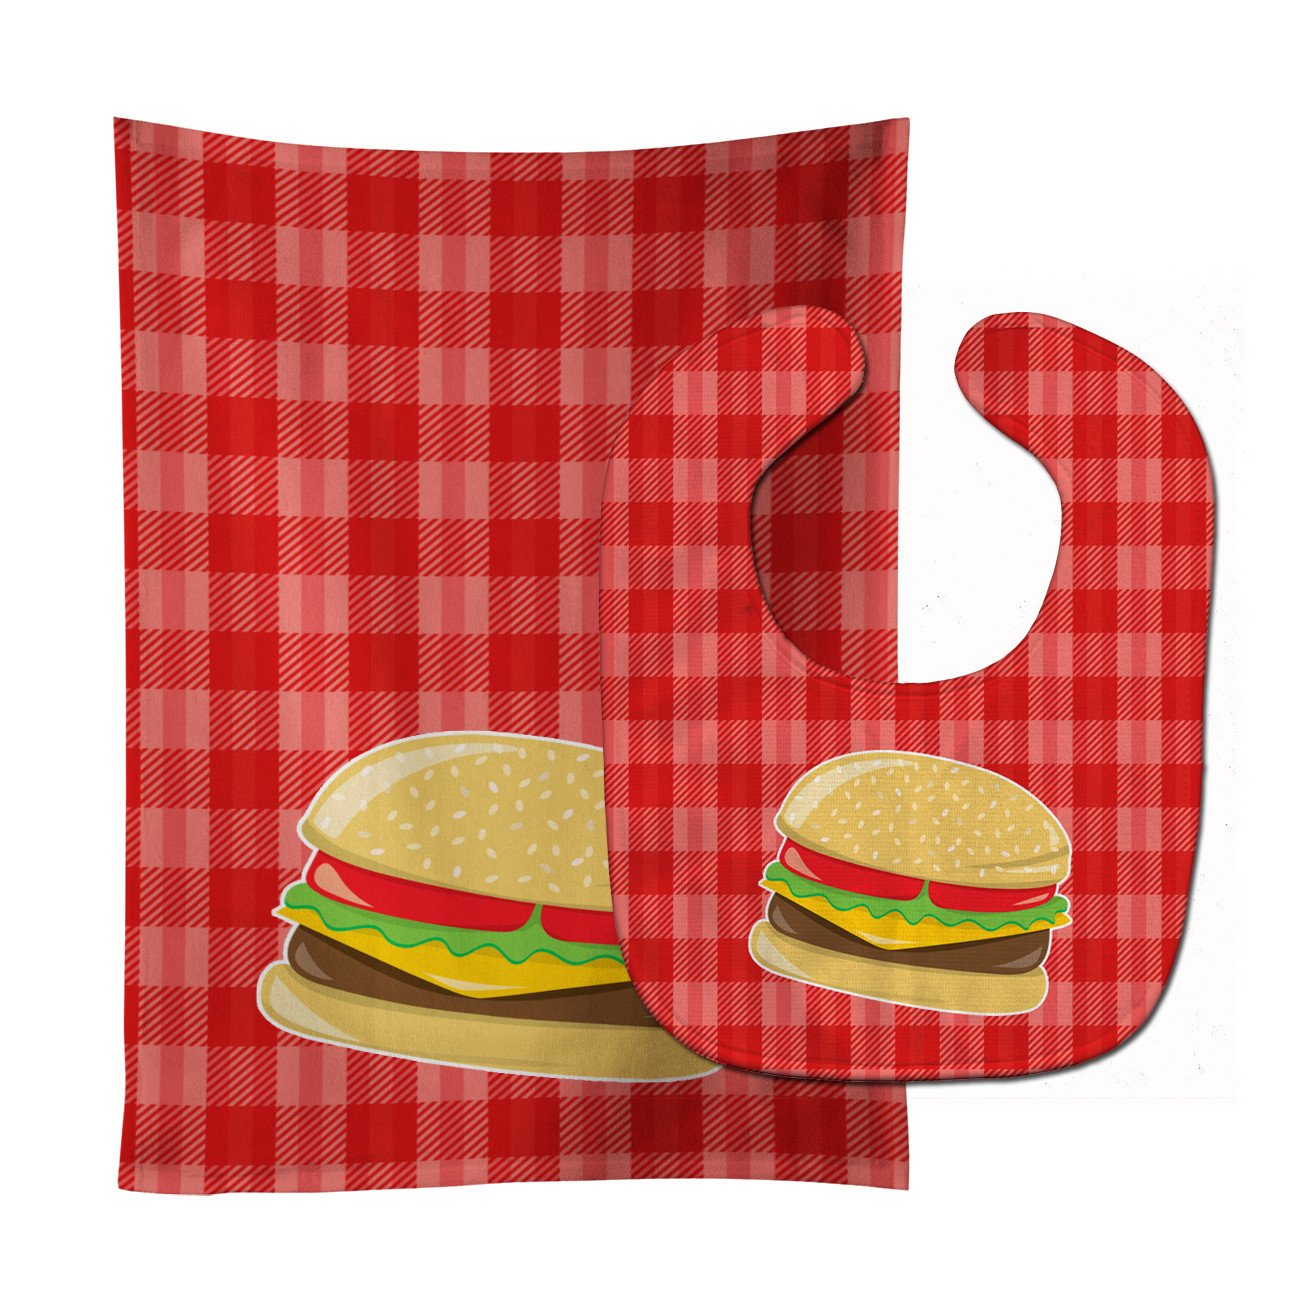 Hamburger Plaid Baby Bib & Burp Cloth BB6812STBU by Caroline's Treasures